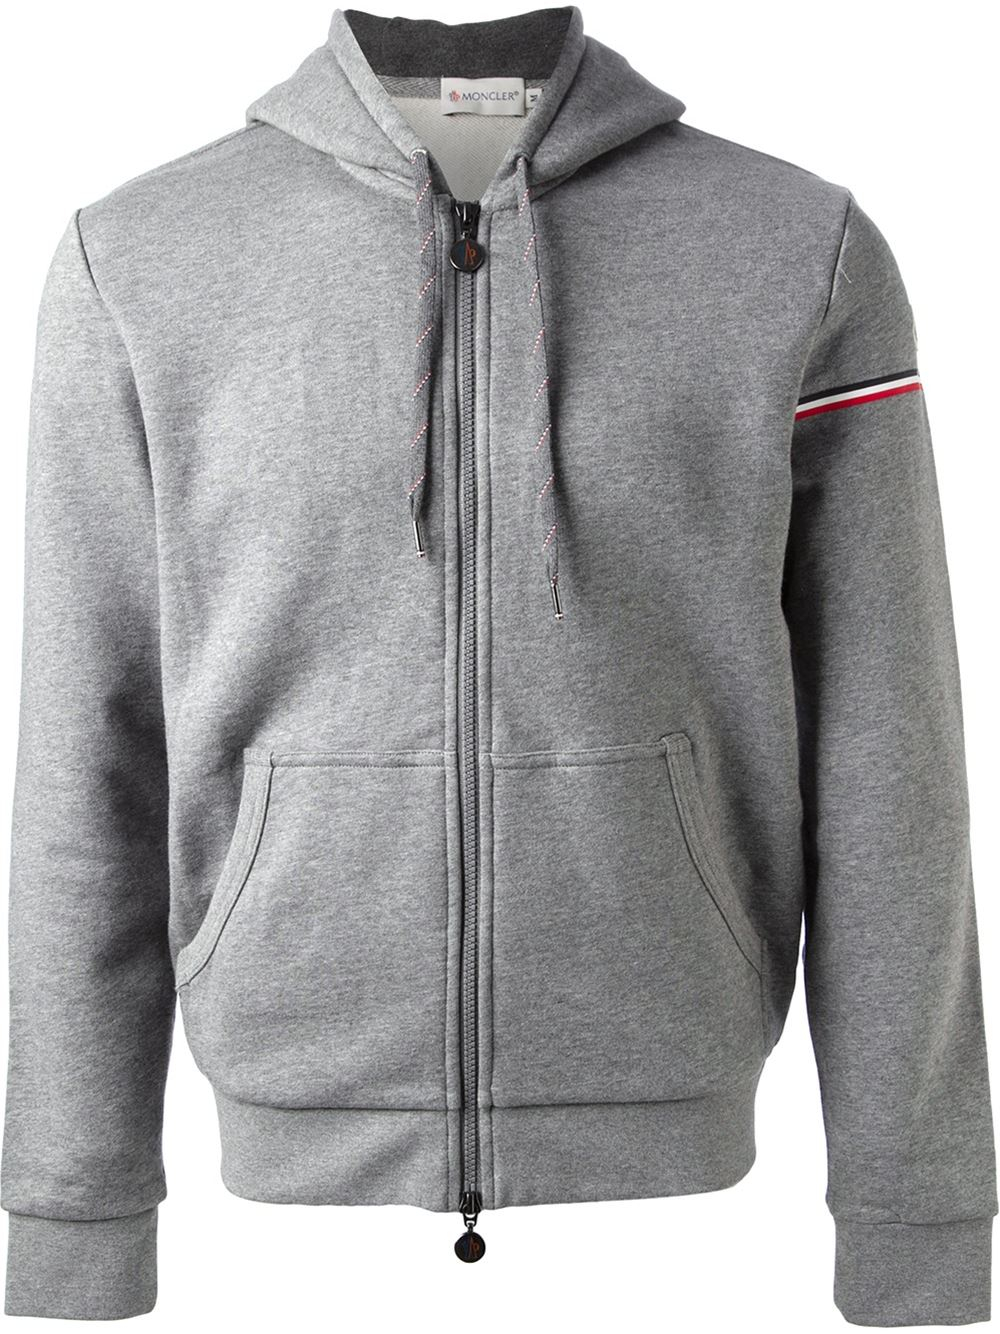 moncler grey zip up